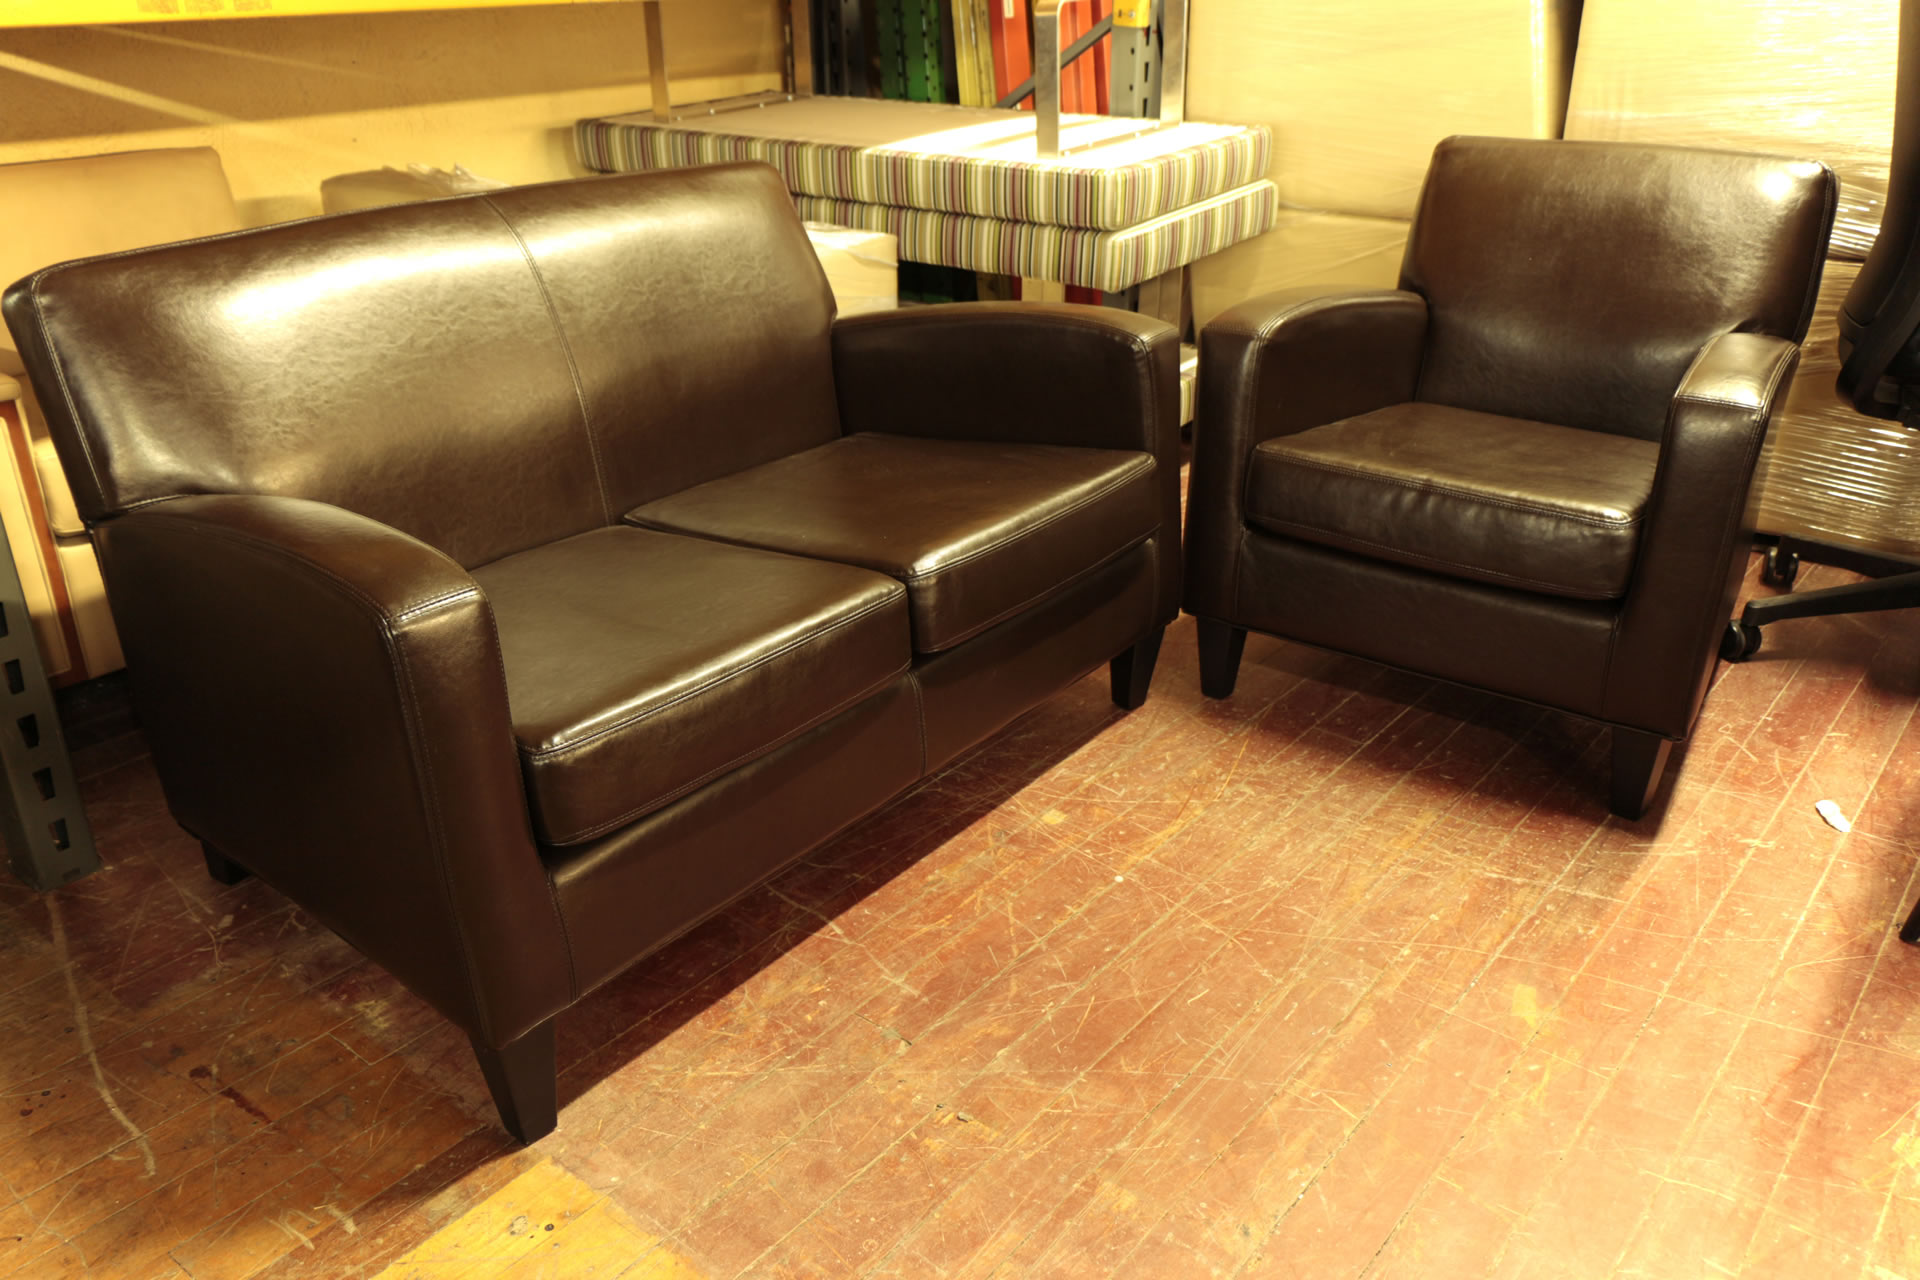 Ikea Brown Leather Sofa & Love Seat Set